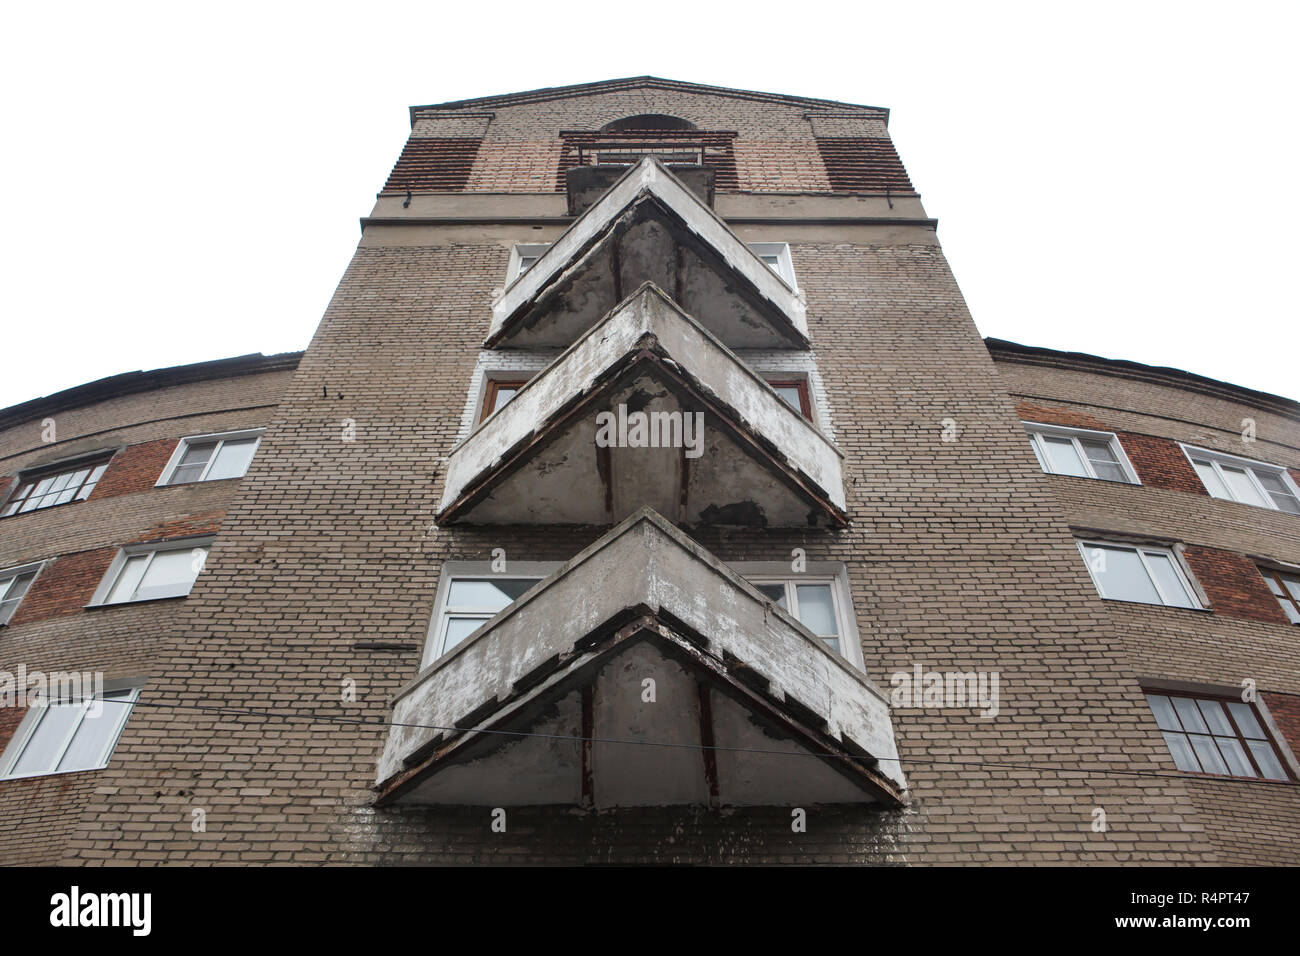 Triangular balconies of the constructivist dwelling complex nicknamed the Horseshoe House in Ivanovo, Russia. The apartment building designed by Soviet modernist architect Alexander Panov was built in 1933-1934 in Gromoboya Street as a dwelling complex for the staff of the OGPU, secret police of the Soviet Union from 1923 to 1934, later known as the NKVD and the KGB. ATTENTION: This image is a part of a photo essay of 35 photos featuring Soviet constructivist architecture in Ivanovo. - Stock Image